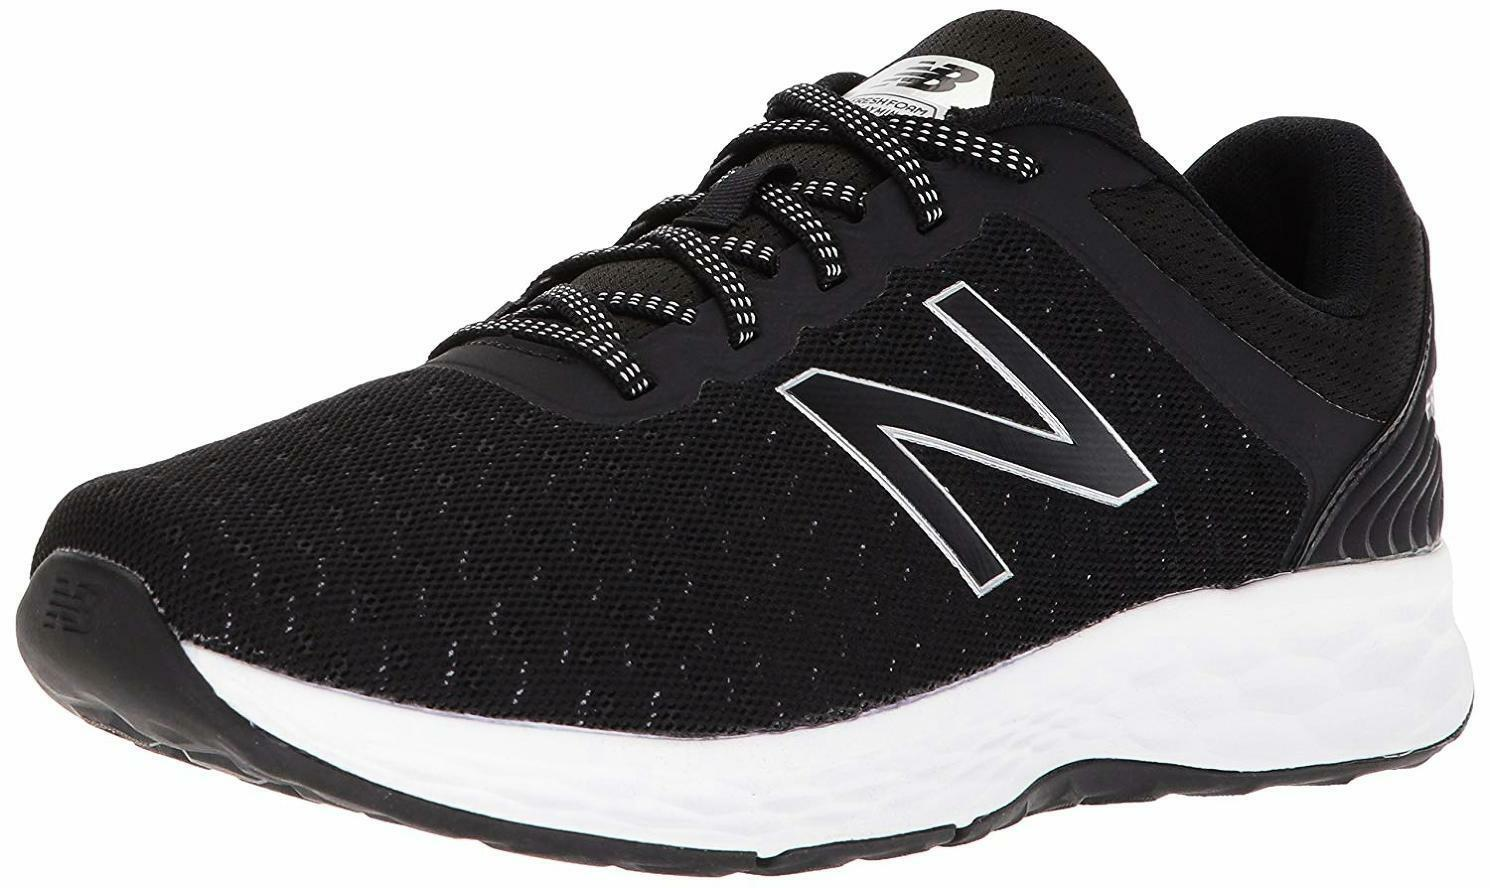 New Balance Men's Fresh Foam Kaymin V1 Running shoes - Choose SZ color